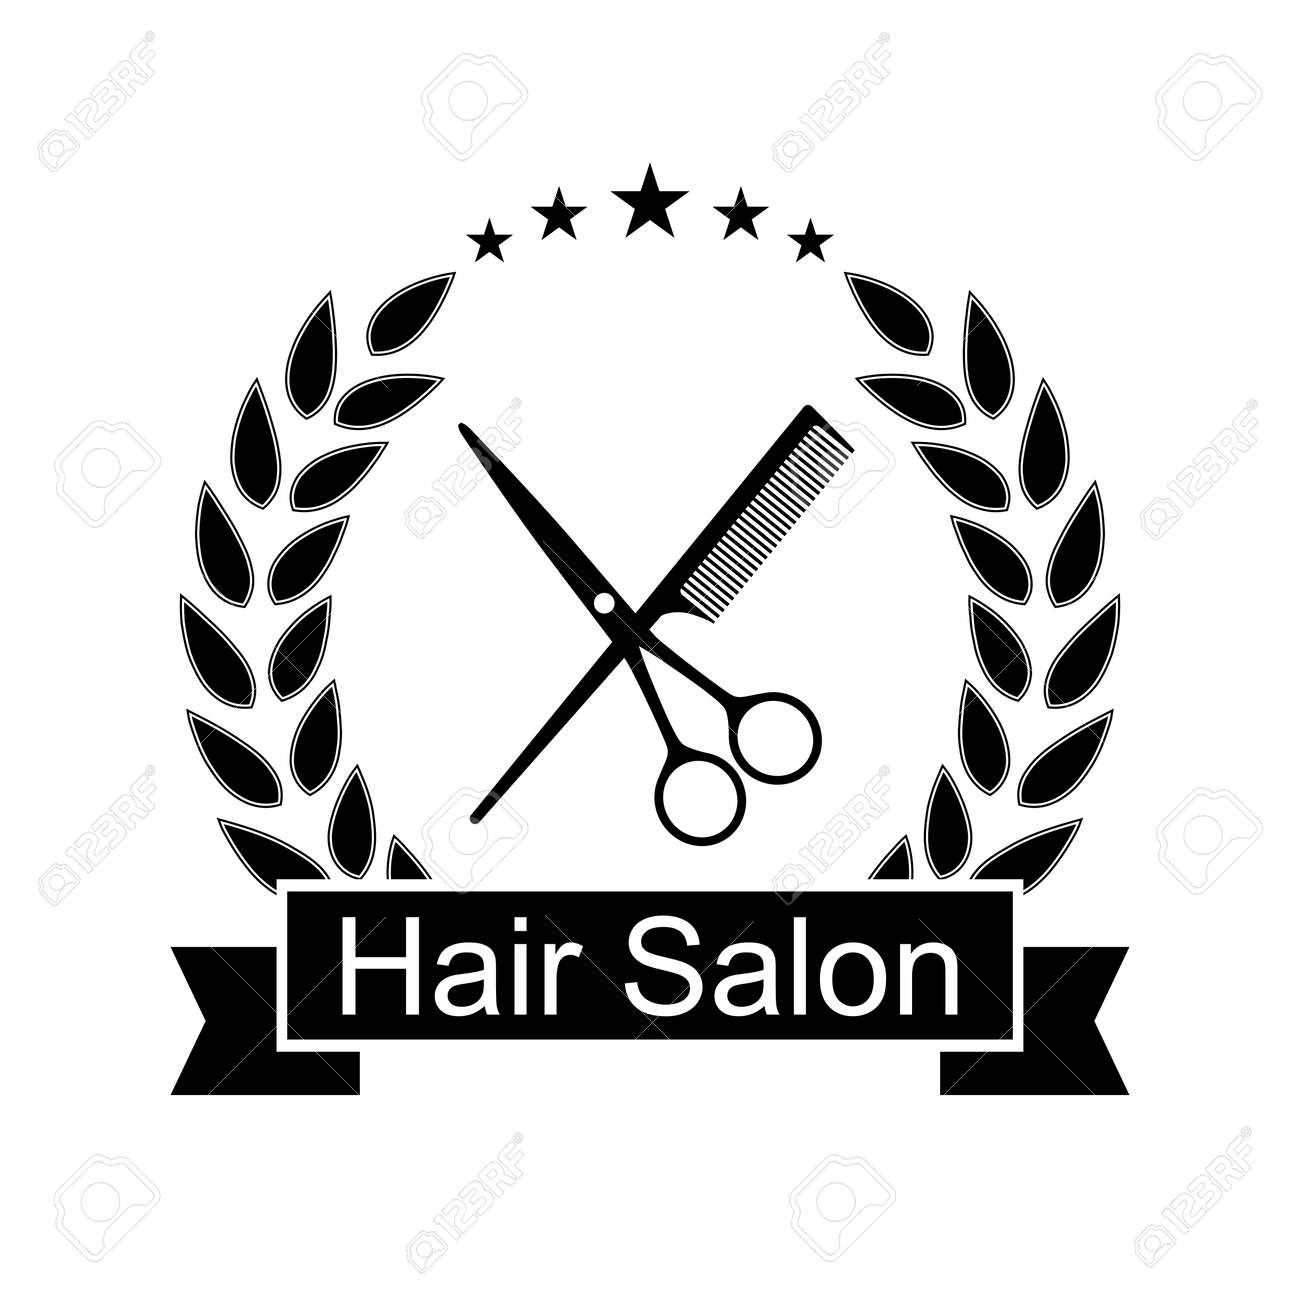 Hair Salon Logo Design Illustration On White Background Royalty Free Cliparts Vectors And Stock Illustration Image 160332931